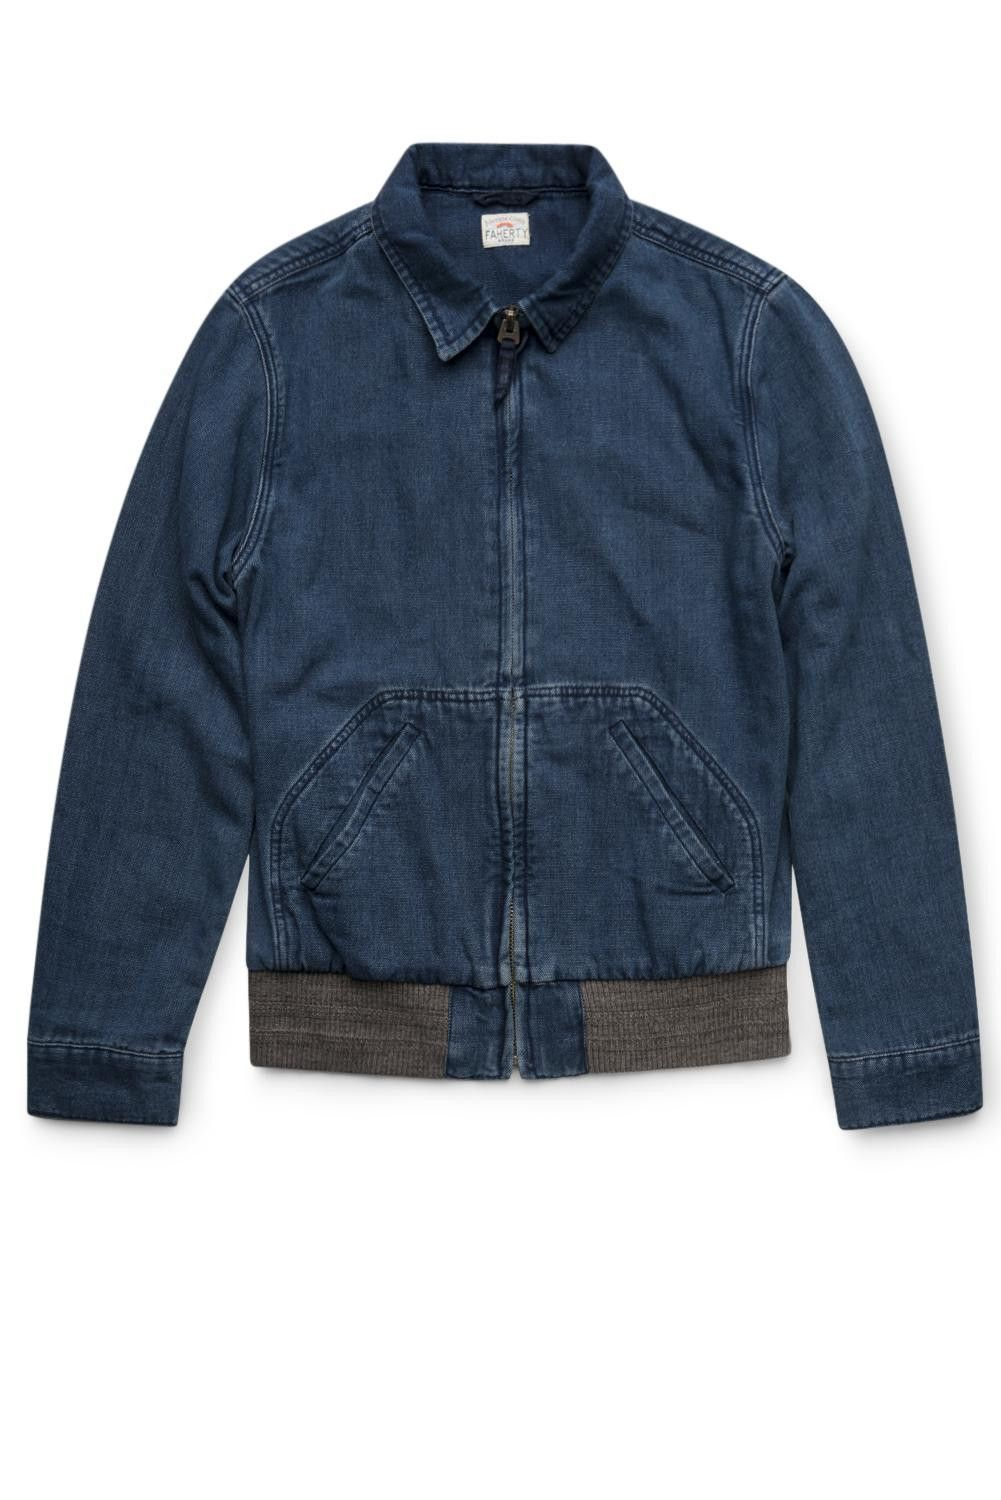 Faherty Brand Indigo Canvas Car Coat